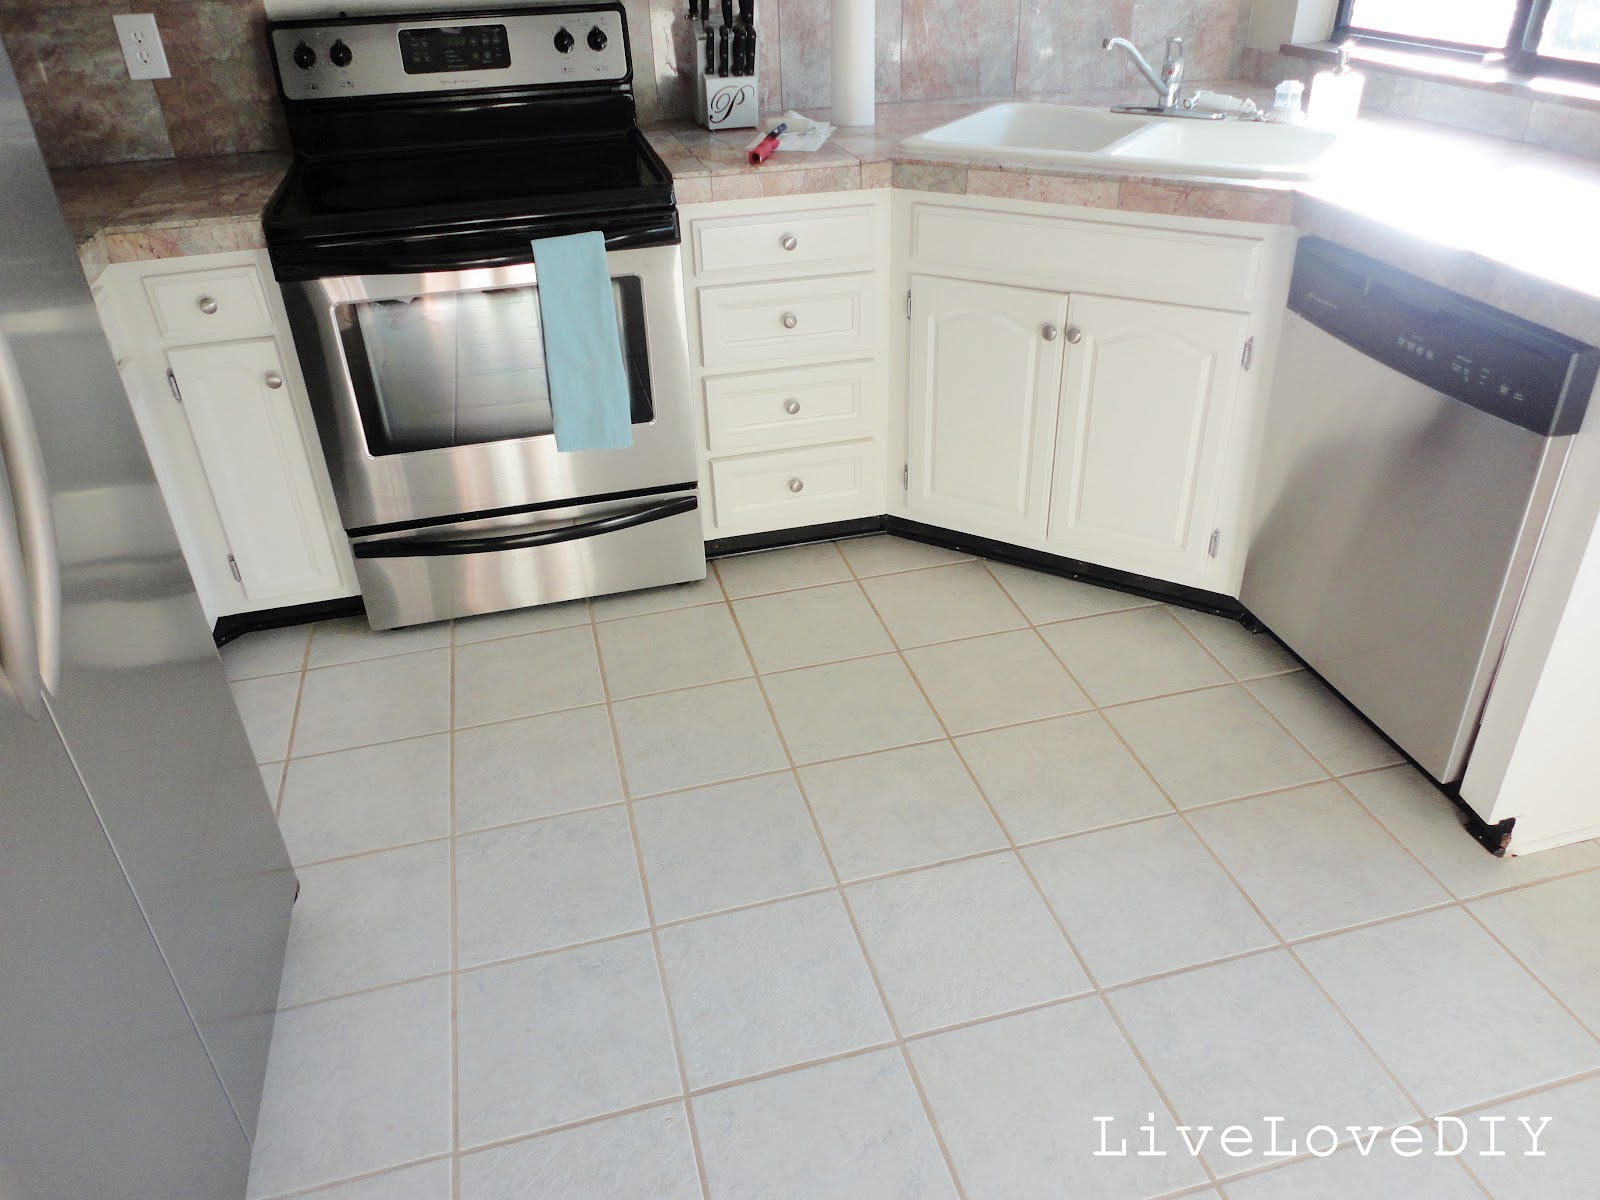 LiveLoveDIY How To Restore Dirty Tile Grout